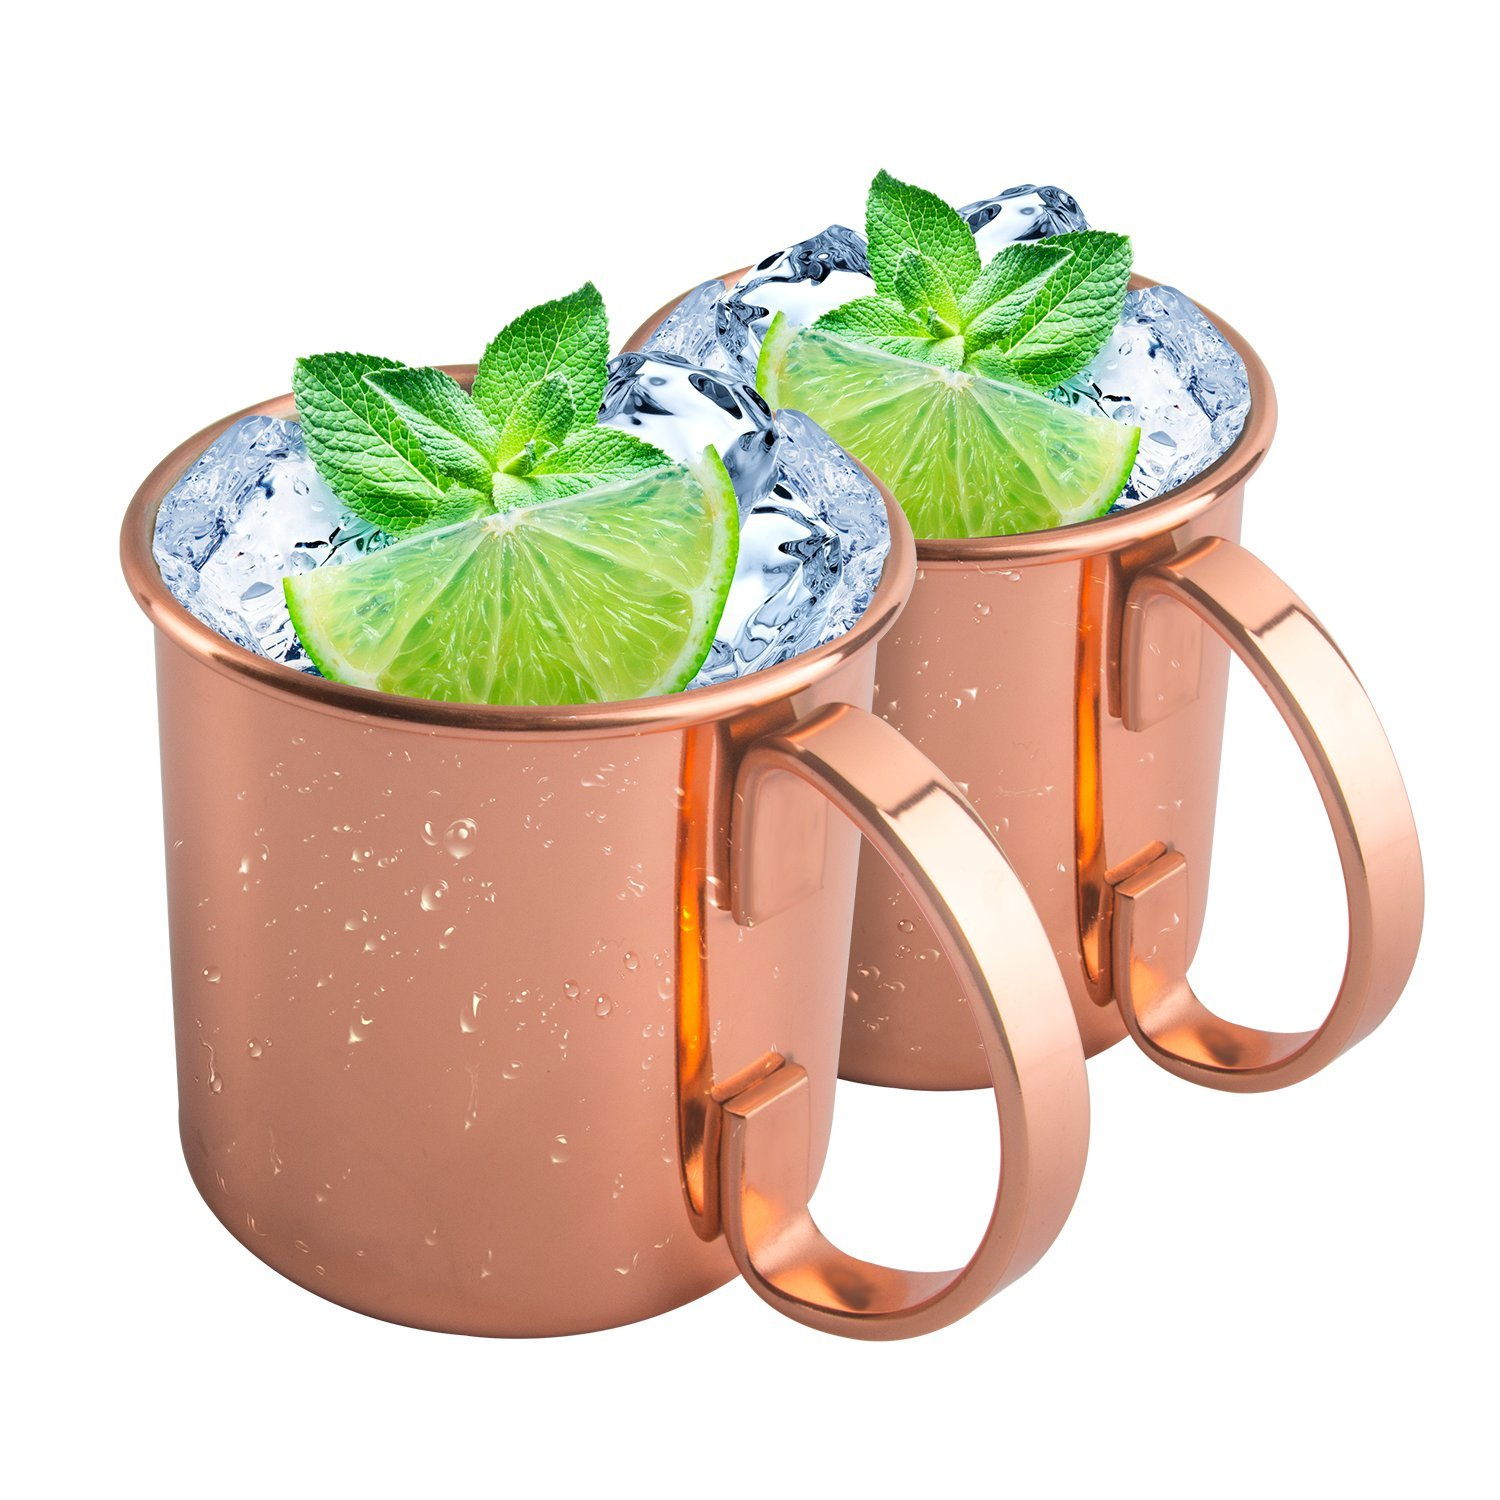 Tassytown Moscow Mule Copper Mugs, Set of 2, Best Mug for Mules, Beer and other Ice Cold Drindks, 16 Oz